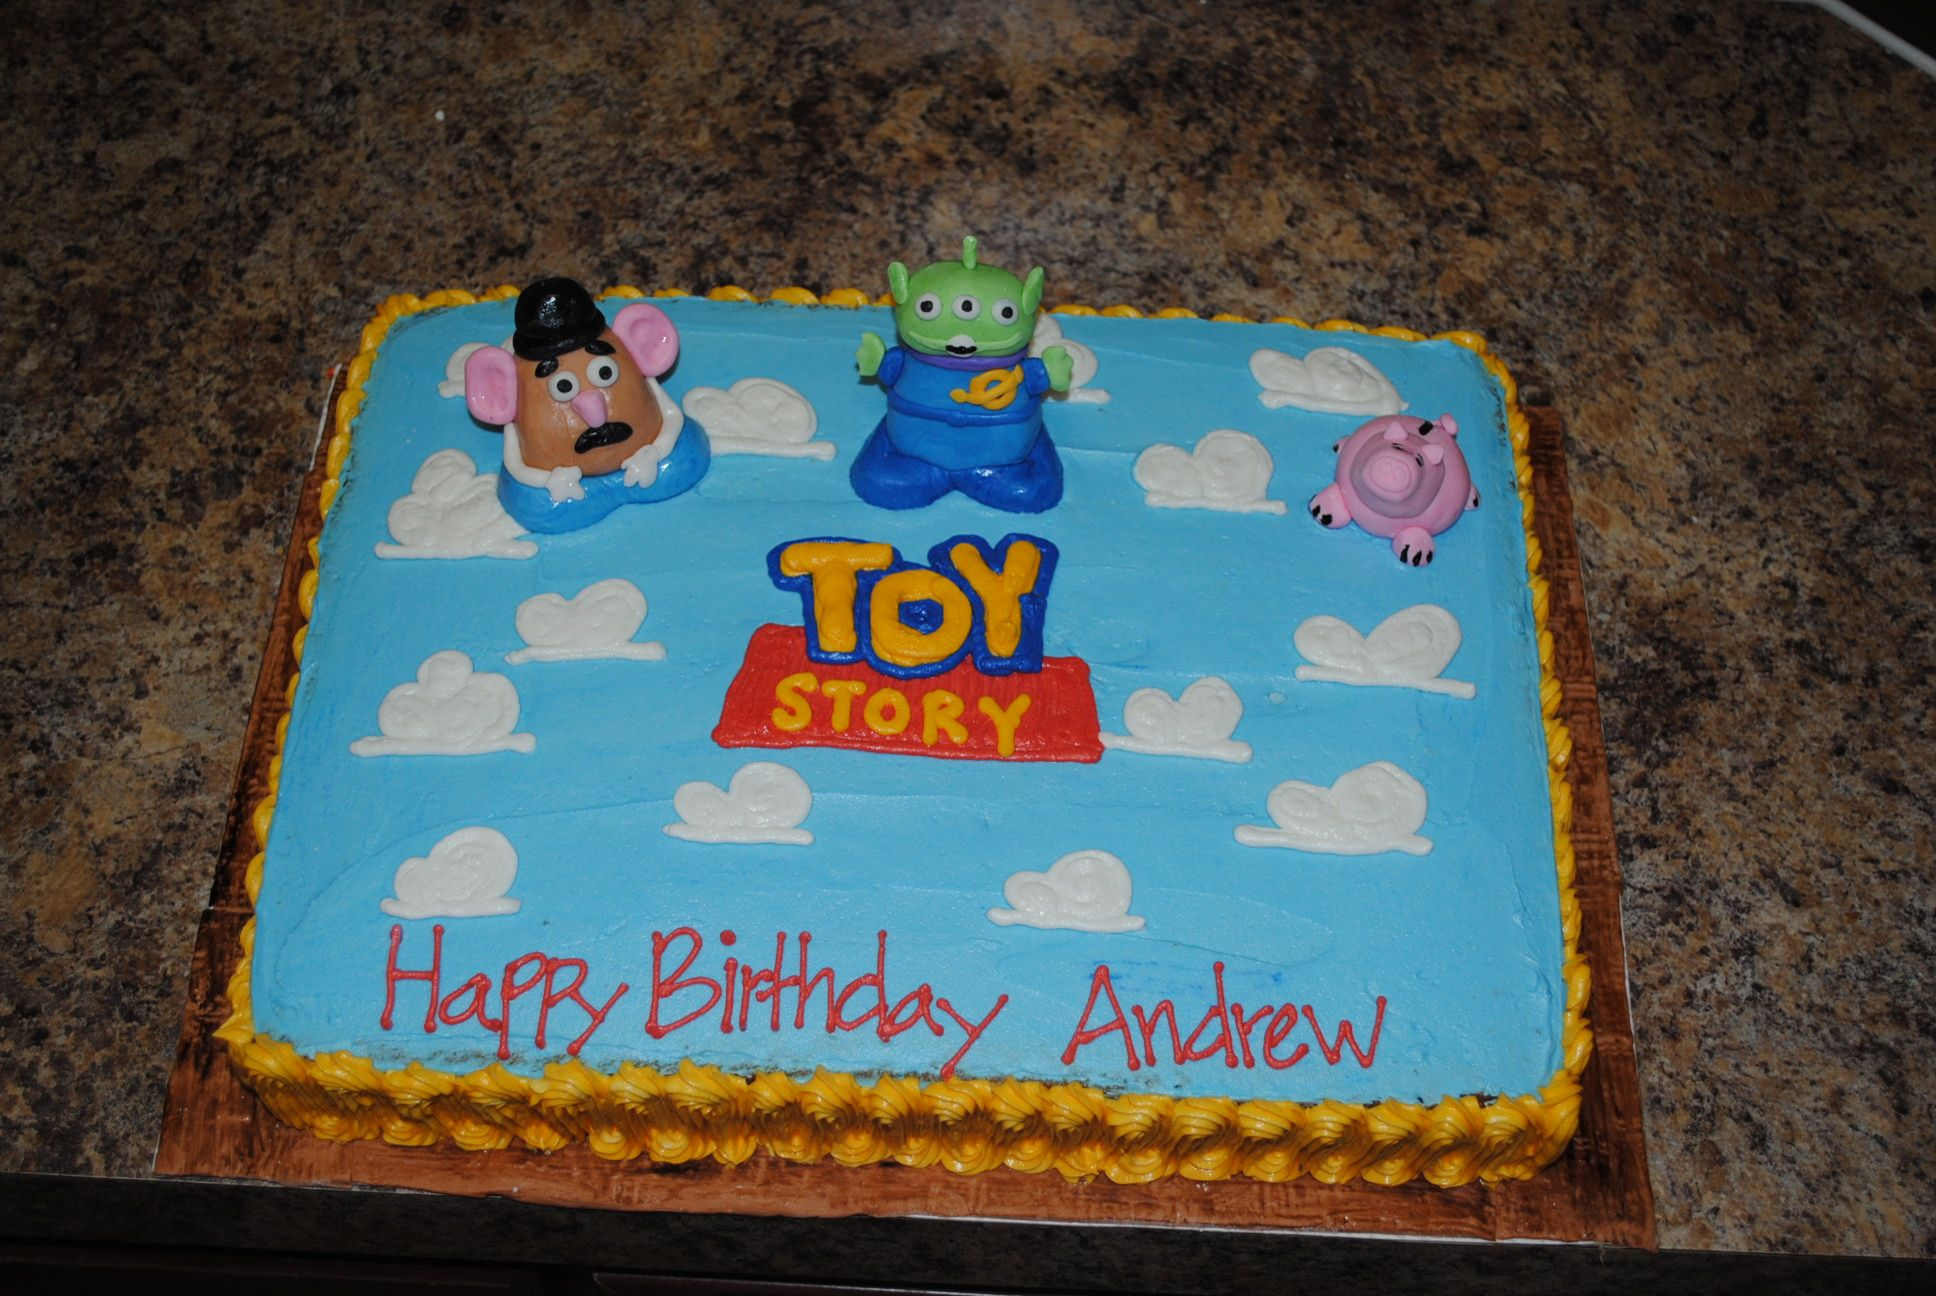 Toy Story Sheet Cake Buttercream Icing With Fondant Characters